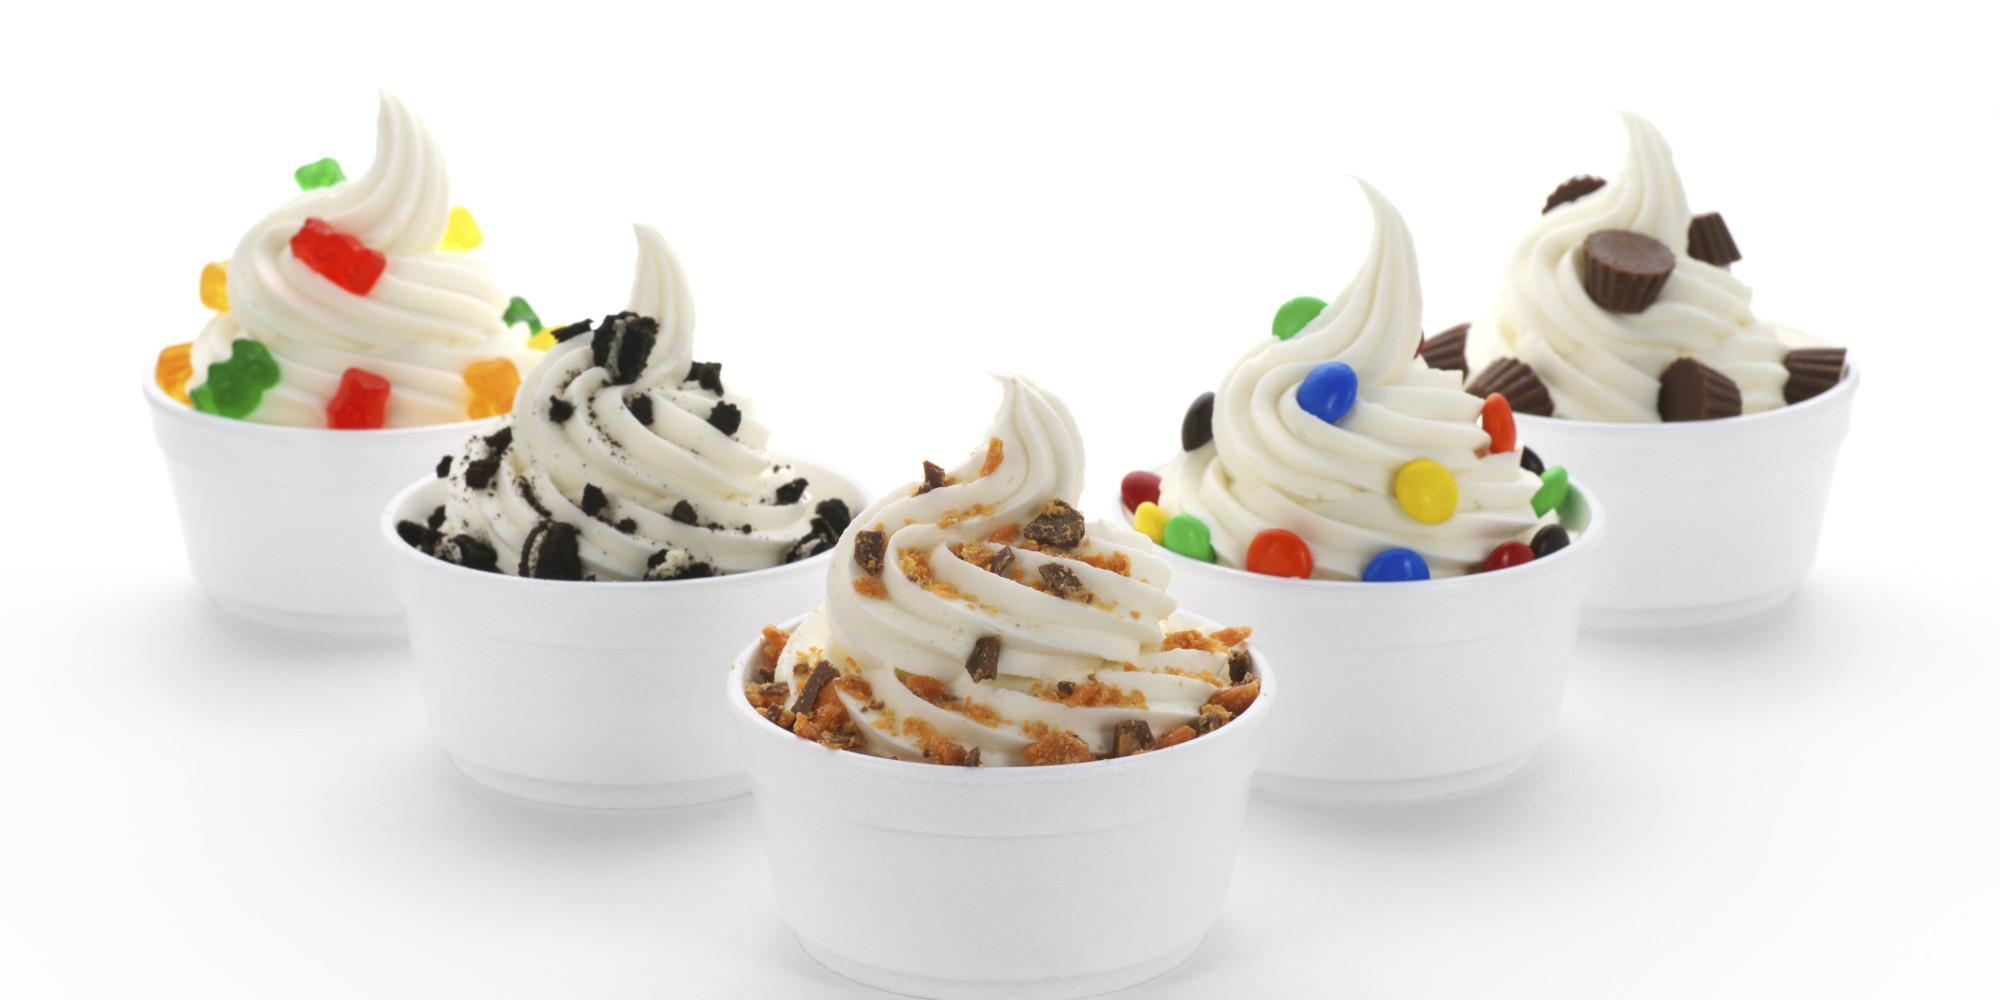 which would you rather have, regular yogurt or frozen yogurt?